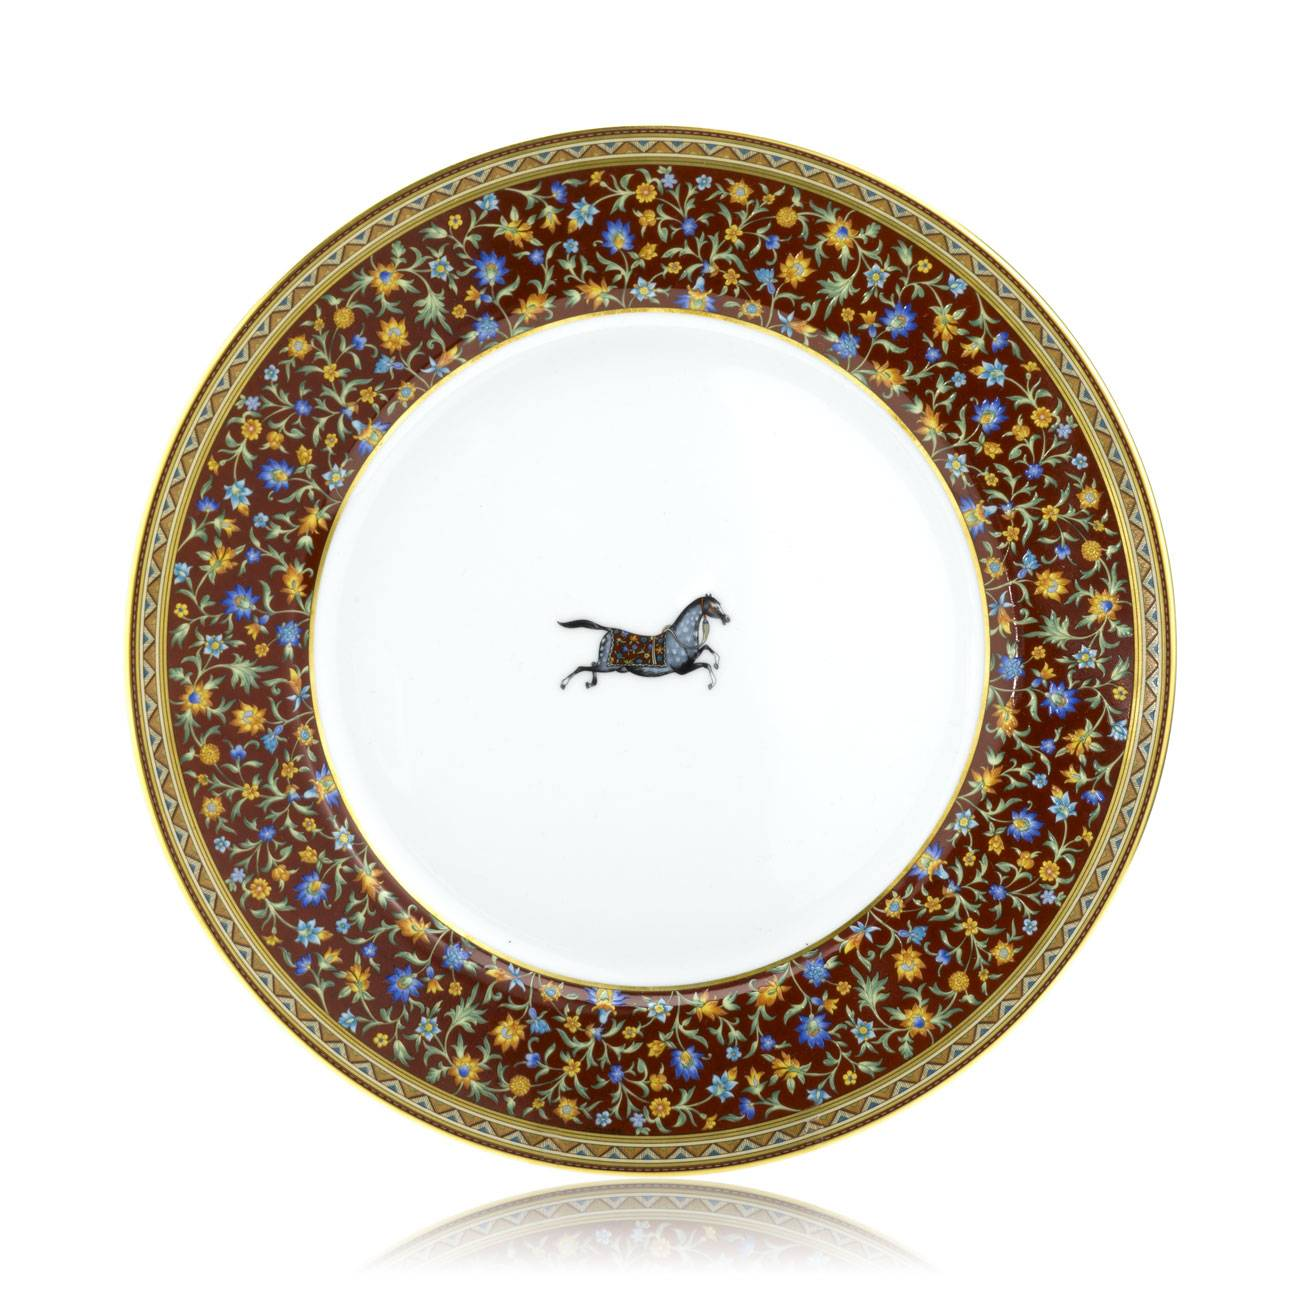 Herms Cheval D'Orient Dinner Plate